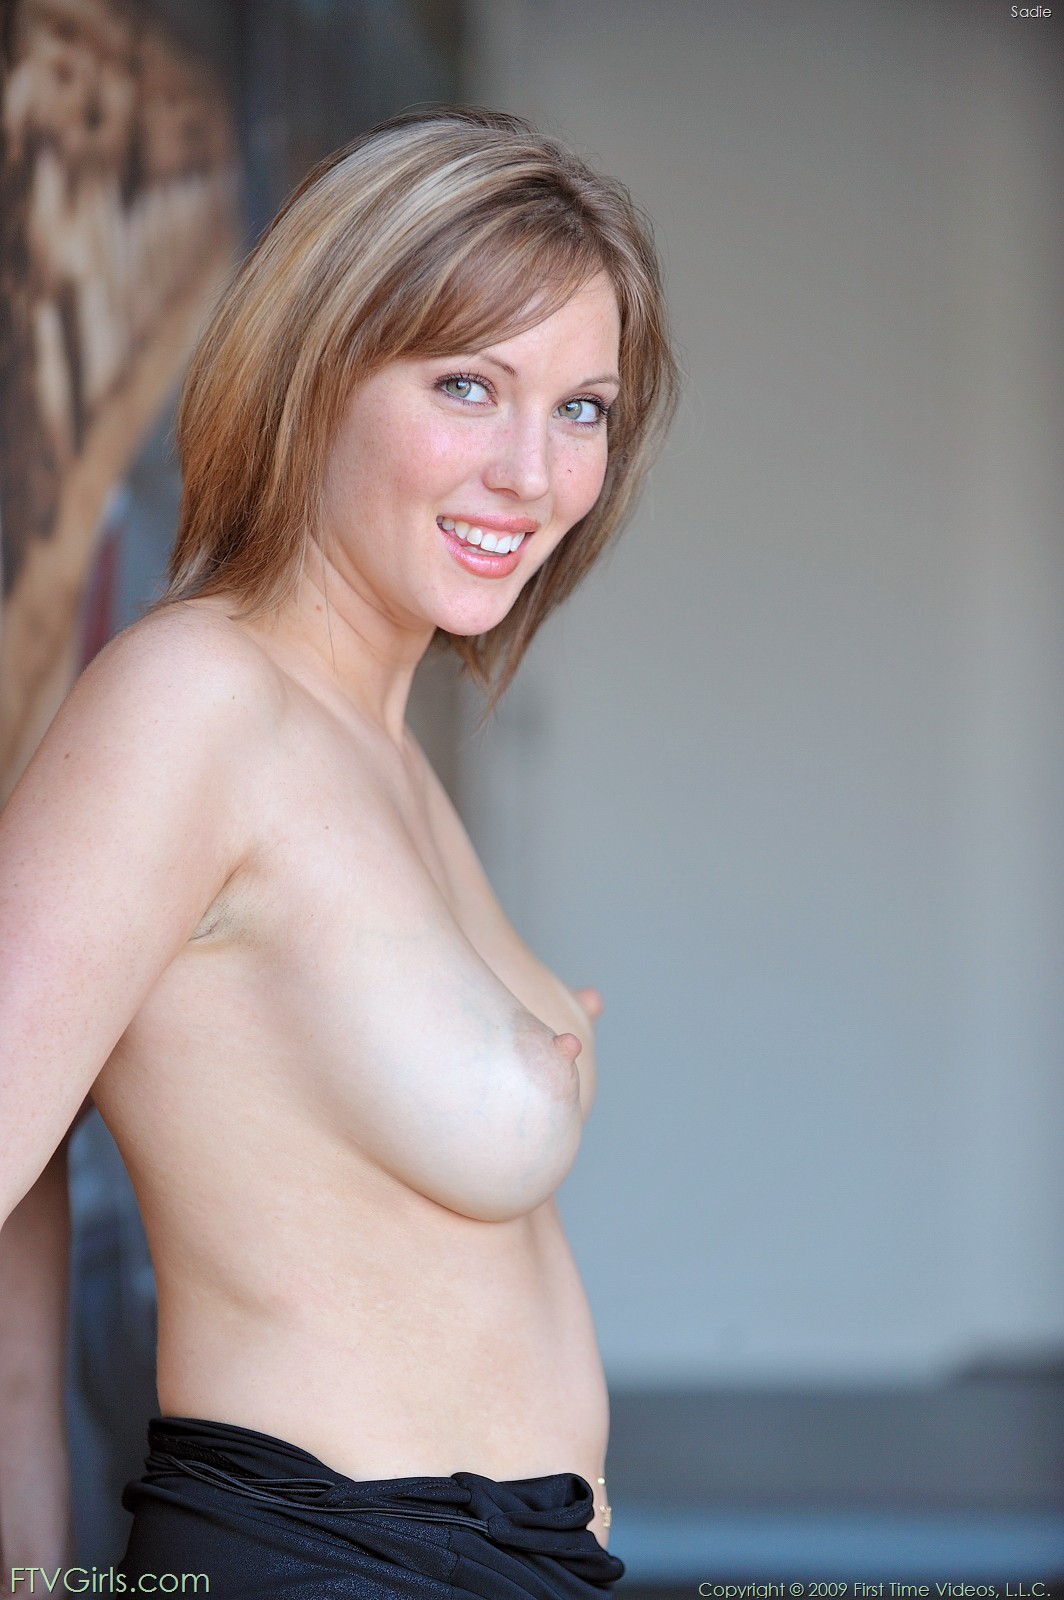 naked-girls-fanny-out-white-pussy-for-sale-california